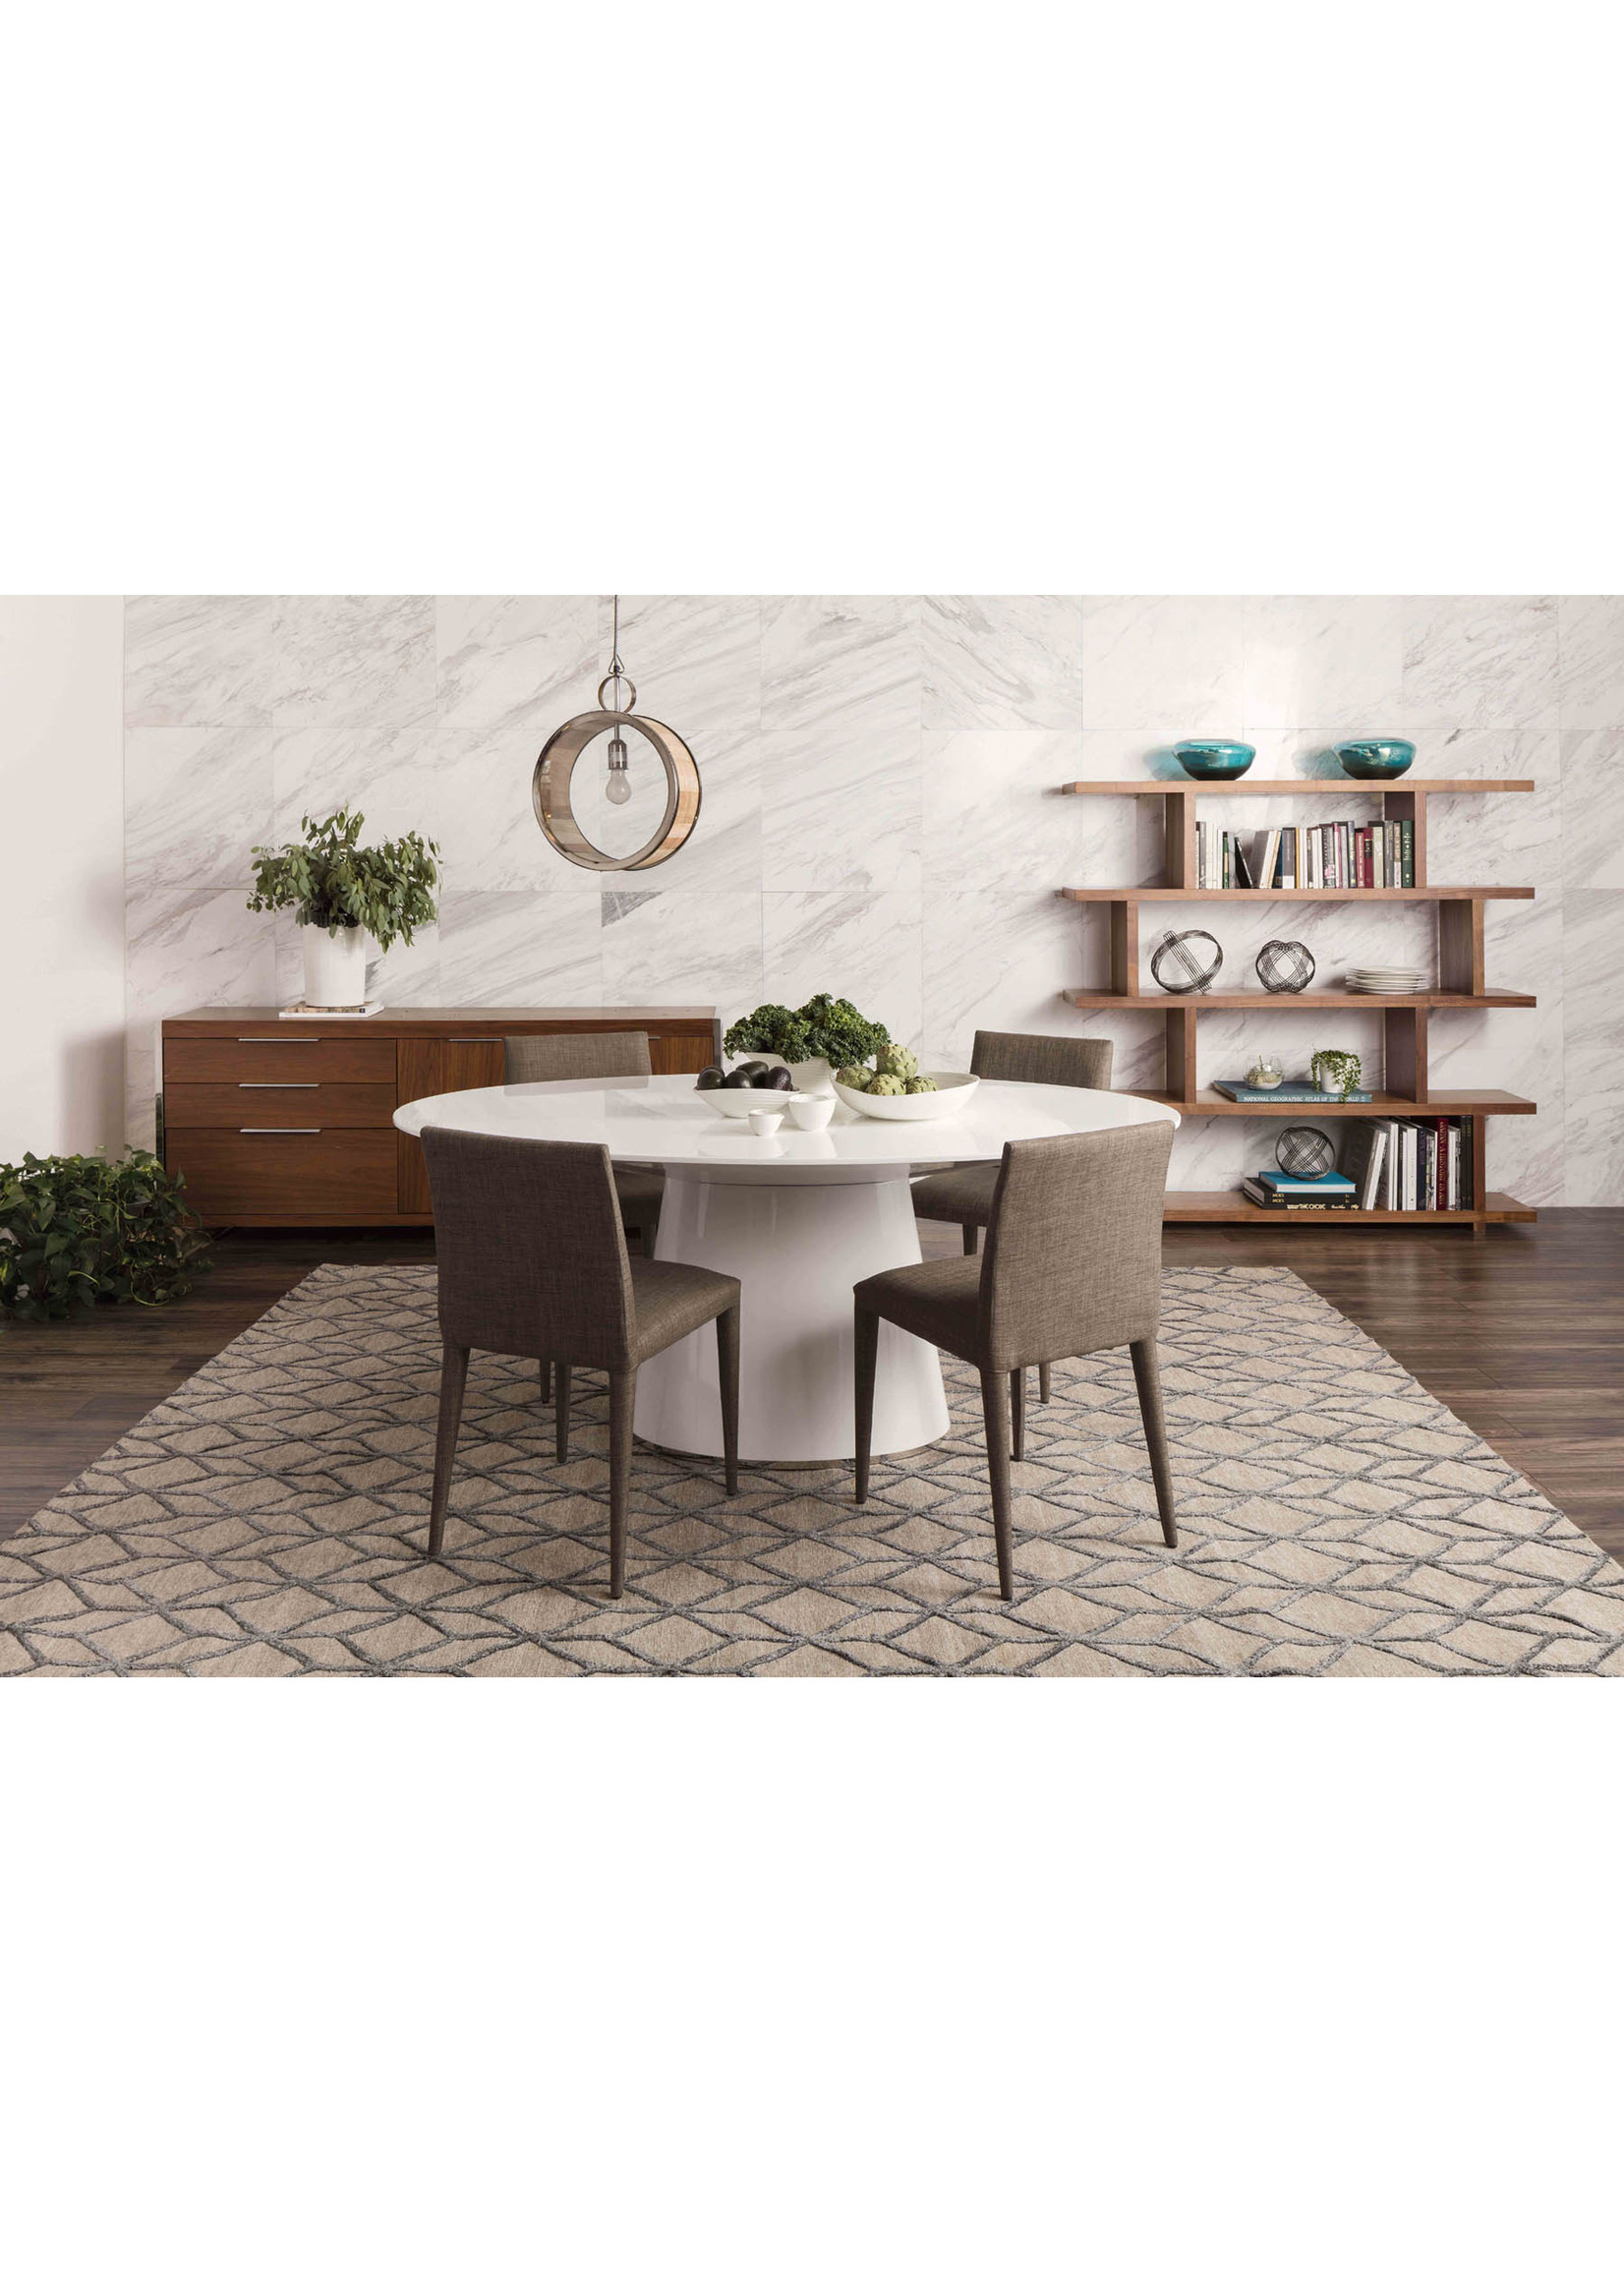 Moes Home Collection Otago Dinning Table White by MOES